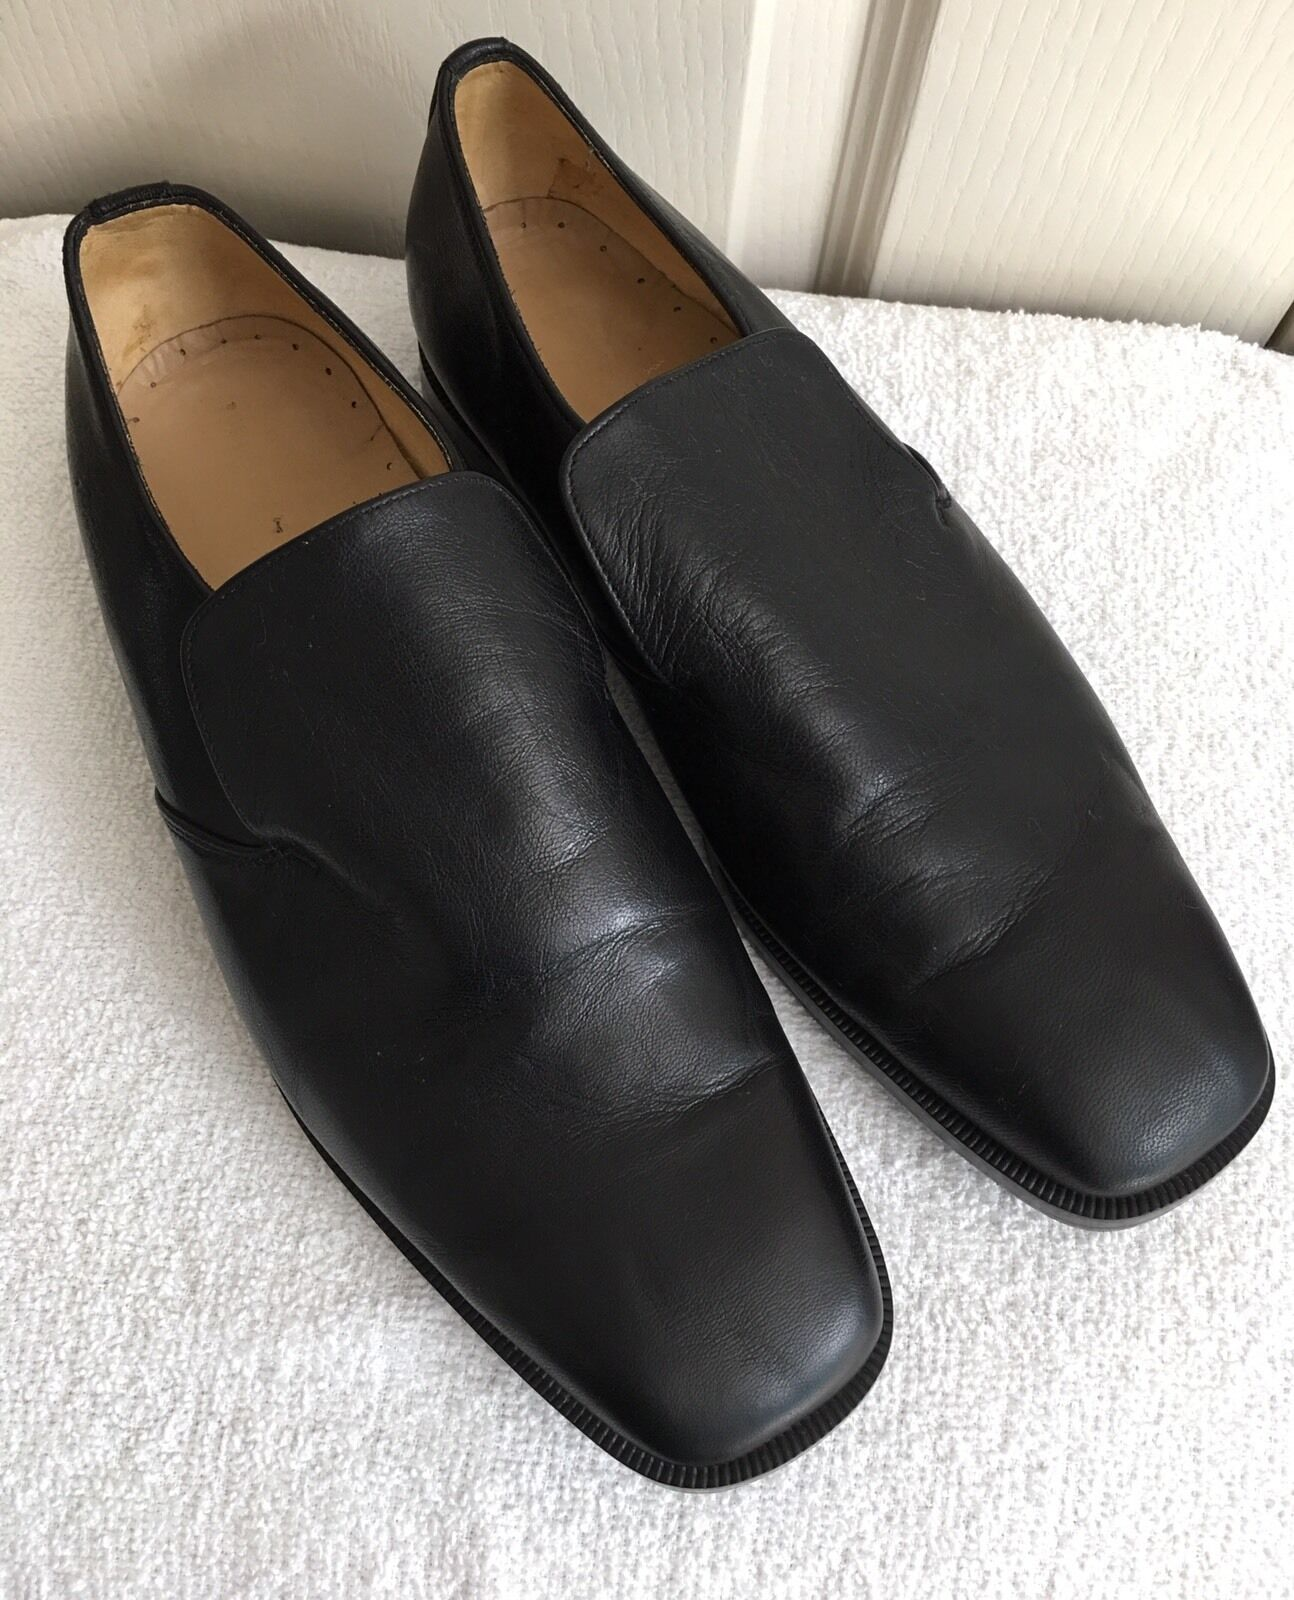 comodamente Mens SIAM LEATHER GOODS nero Slip On Dress Loafers scarpe scarpe scarpe Dimensione EU 46 - US 13  scelte con prezzo basso